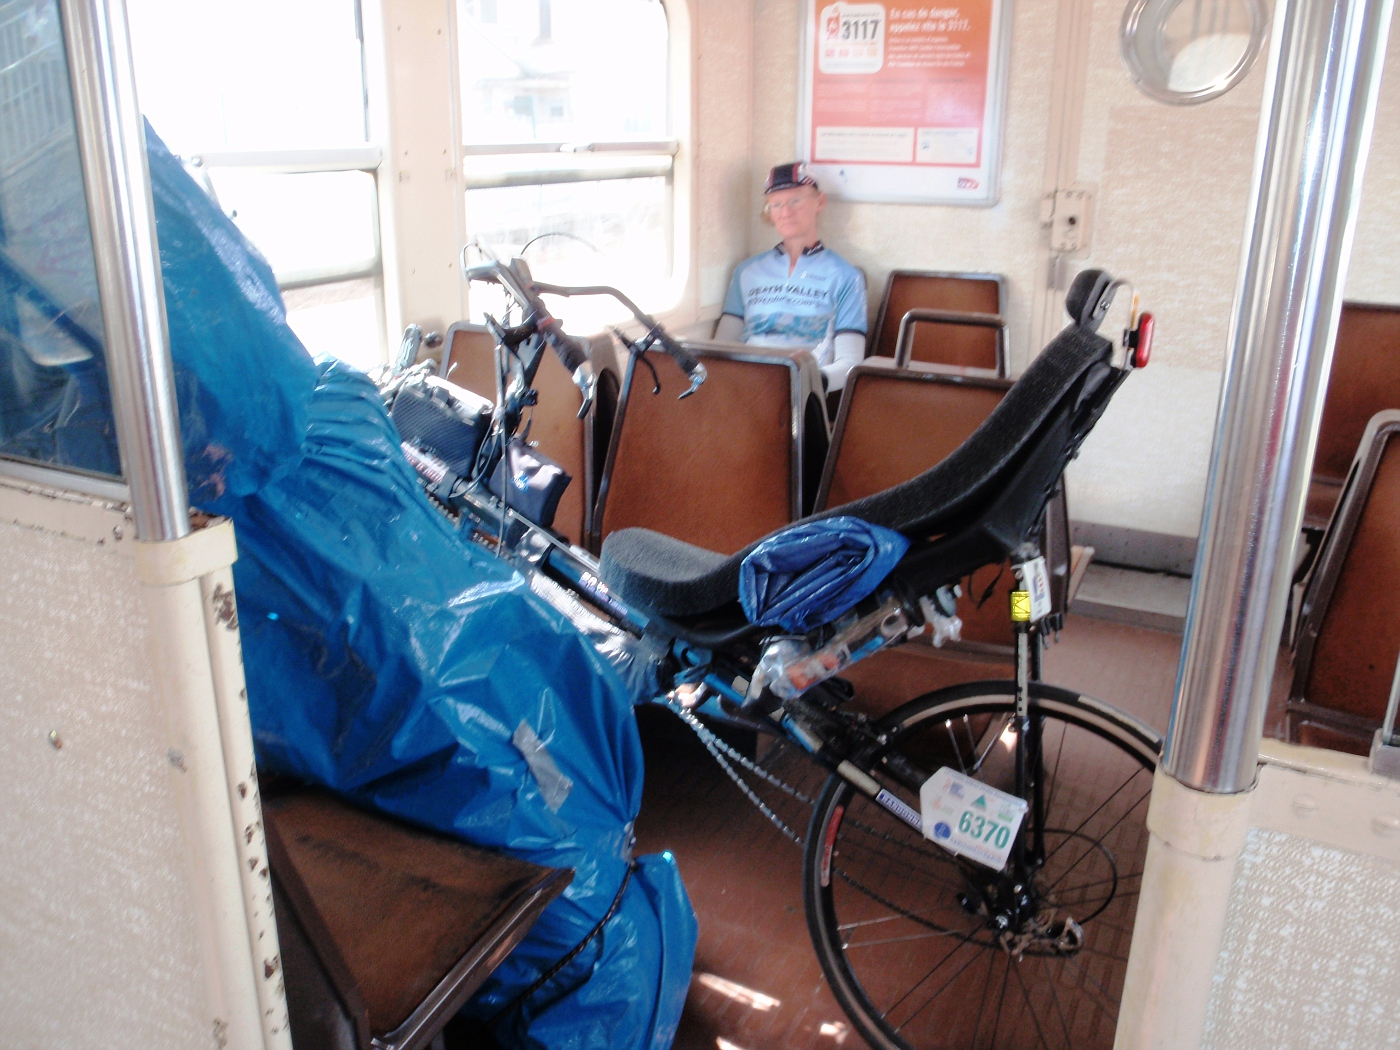 In the commuter train